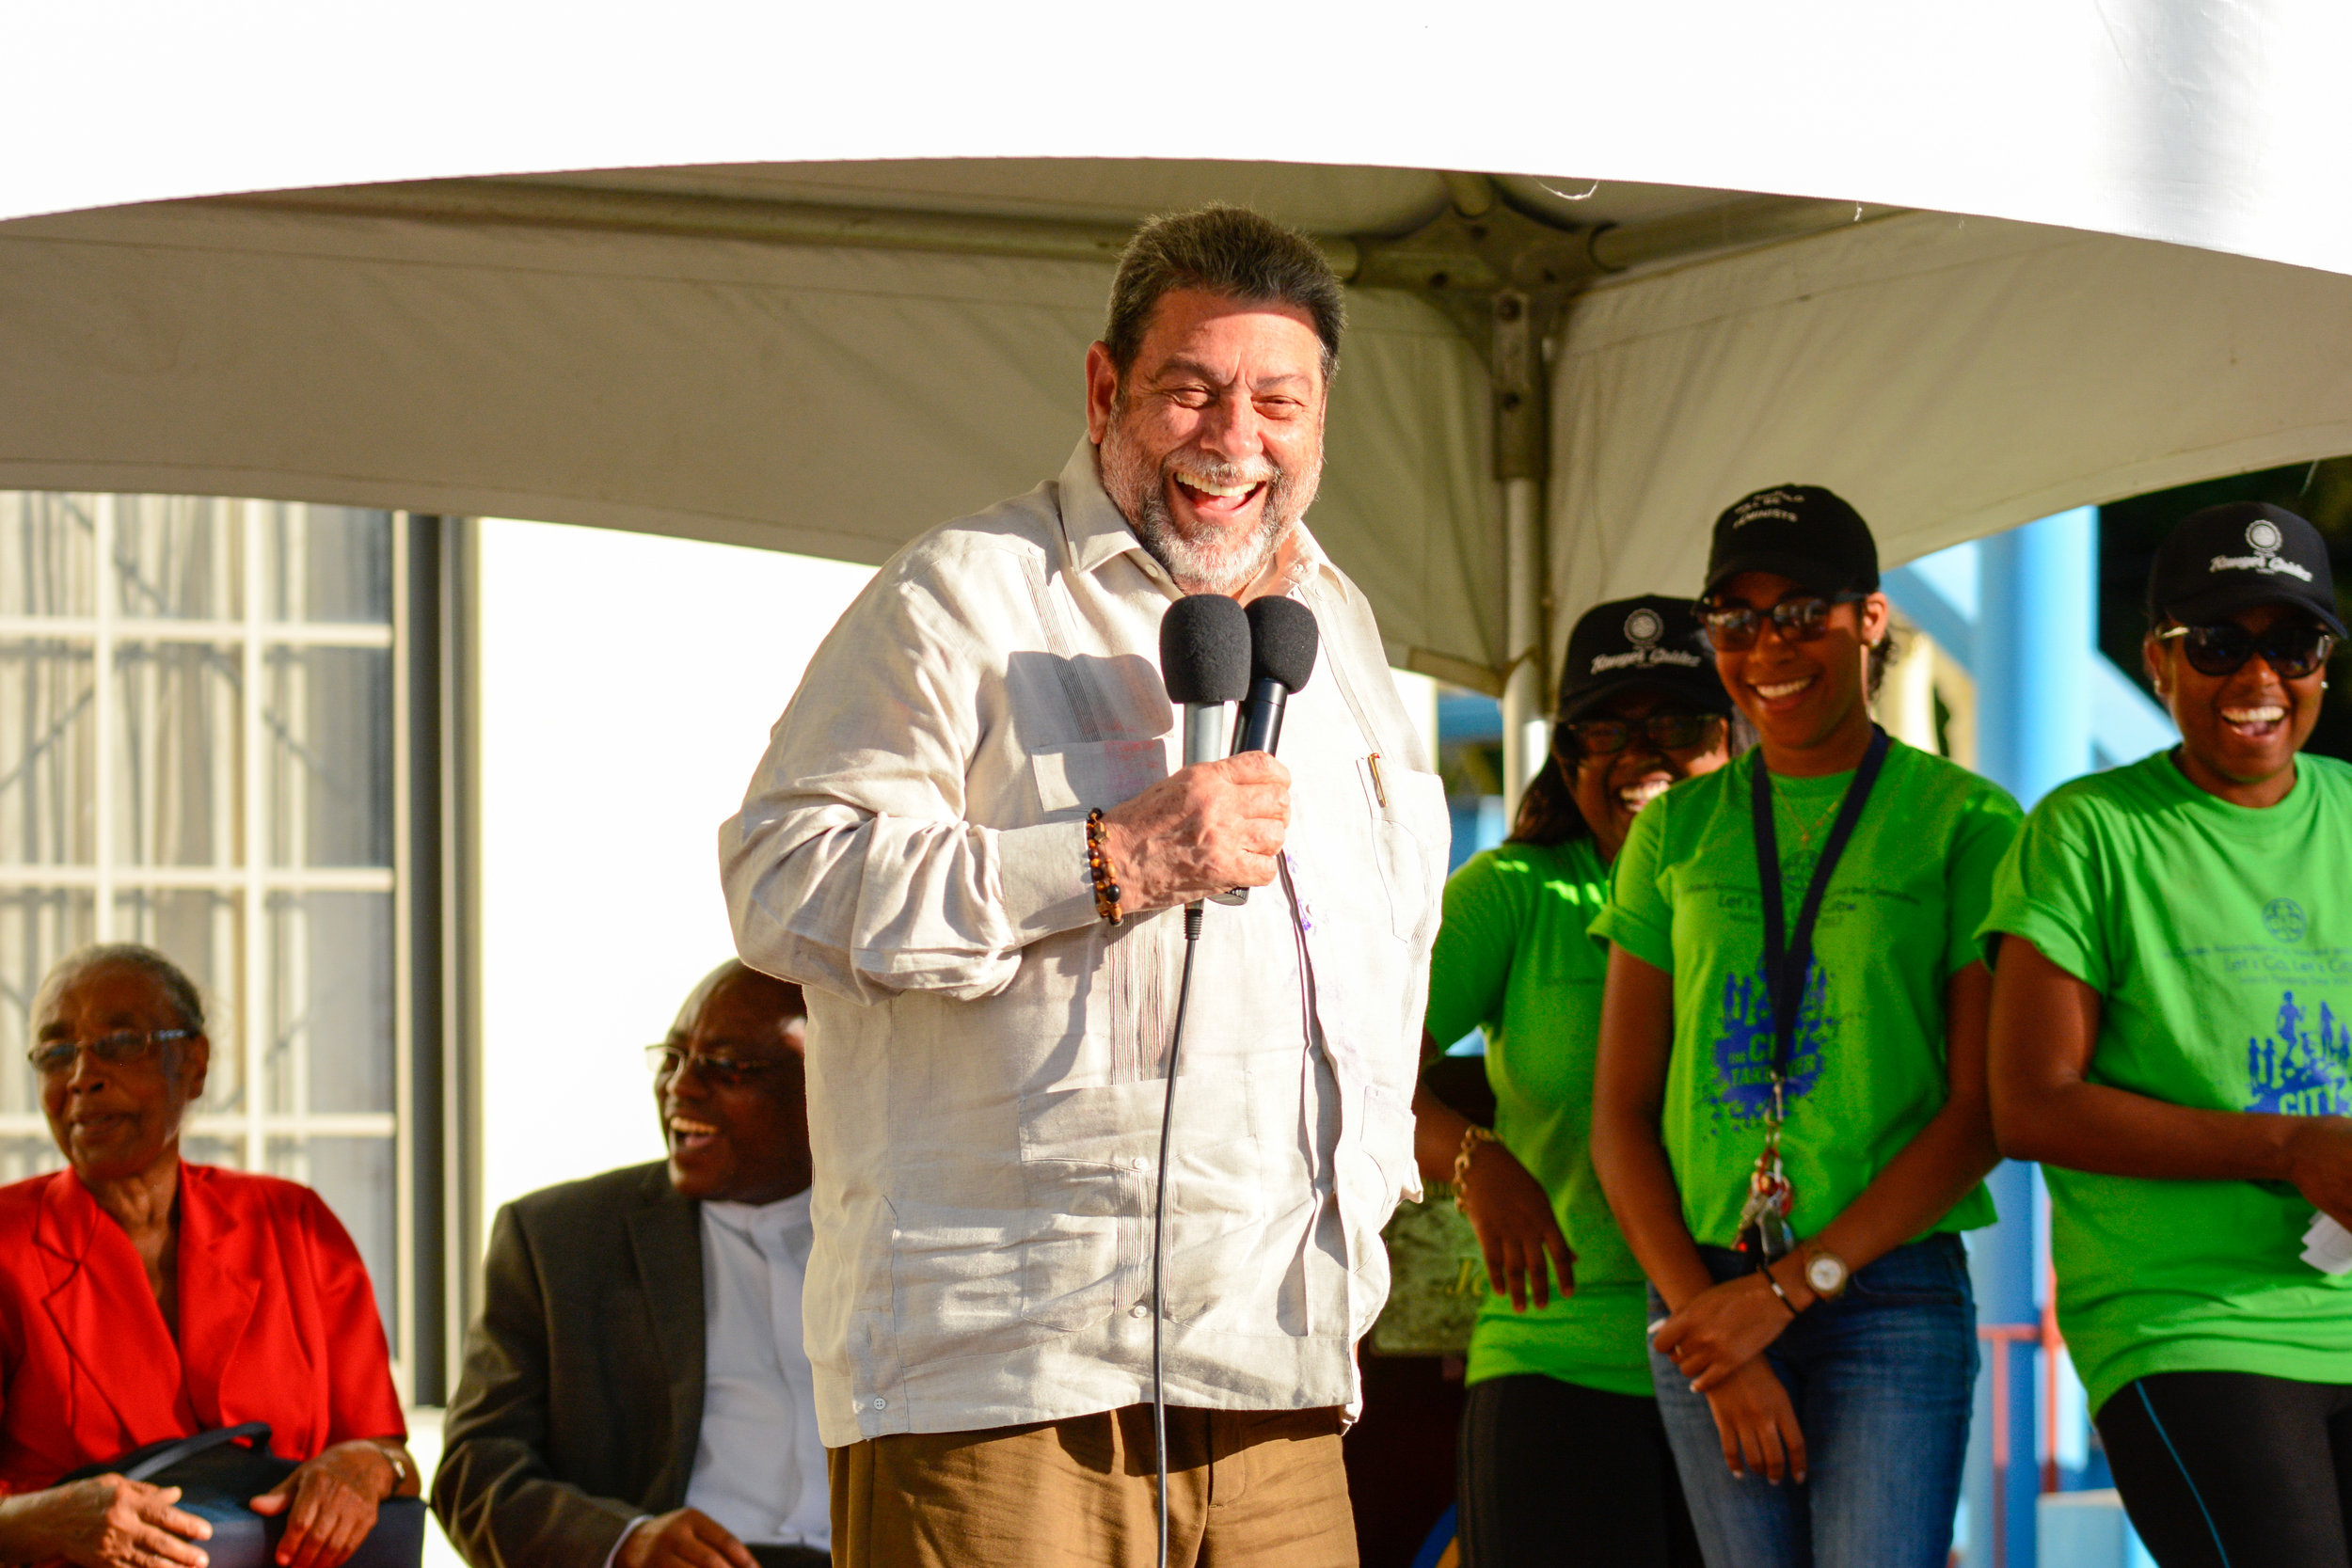 Dr. Hon. Ralph Gonsalves pays a surprise visit to the Girl Guides walk, greeted by smiles all around.